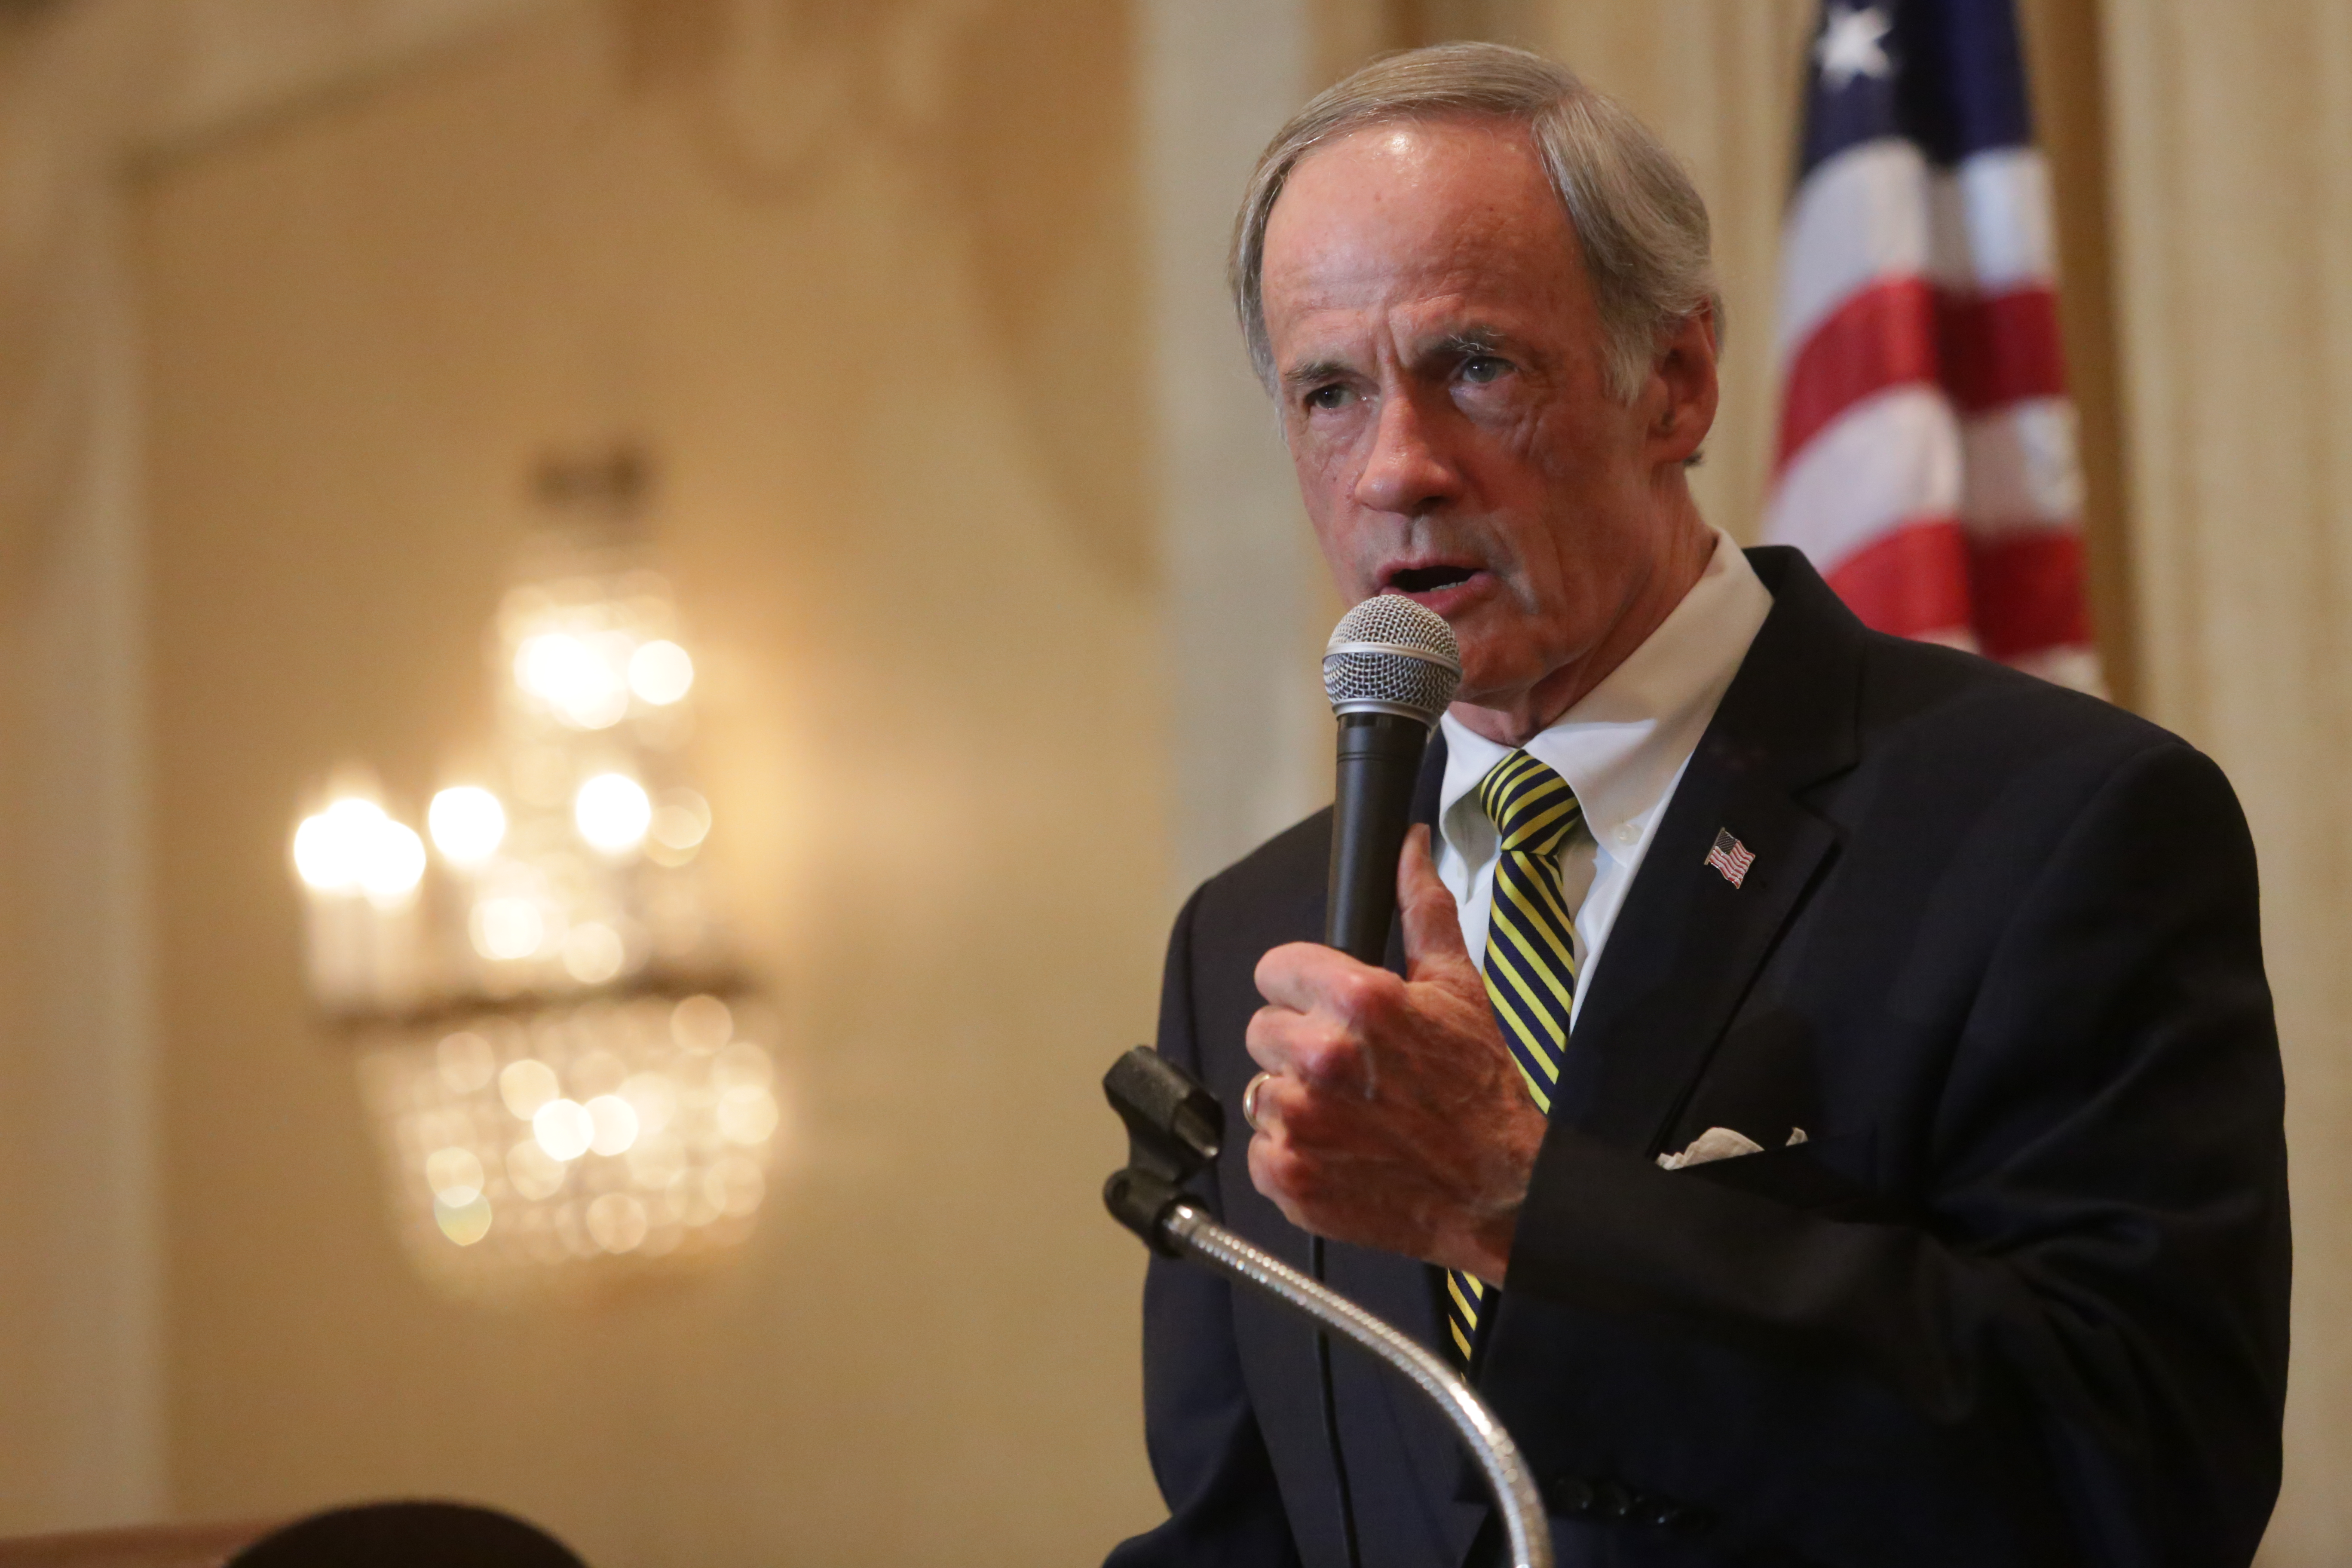 Carper and Blunt Rochester, both Democrats, retain seats in U.S. Congress